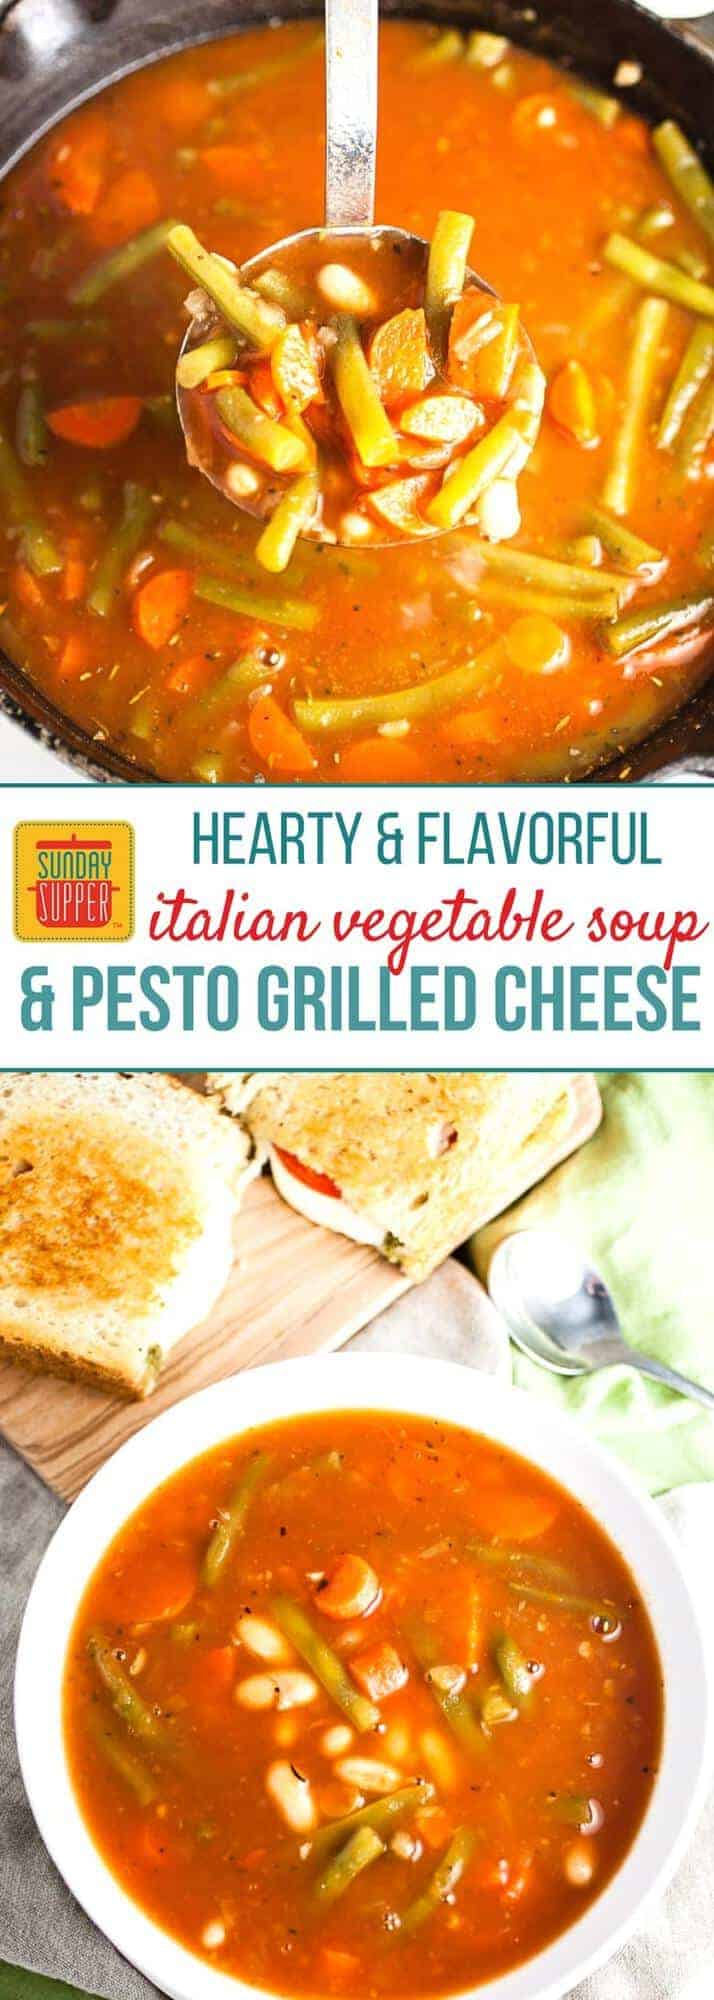 A hearty and flavorful meal that's great any time of the year! You will love how EASY ourPesto Grilled Cheese and Italian Vegetable Soup is to prepare, and the flavor combo of this grilled cheese and soup pairing will quickly become a family fave! The PERFECT lunch meal, weekday supper, or even a casual Sunday Supper. #SundaySupper #WeekdaySupper #GrilledCheese #VegetableSoup #EasyRecipe #lunchrecipe